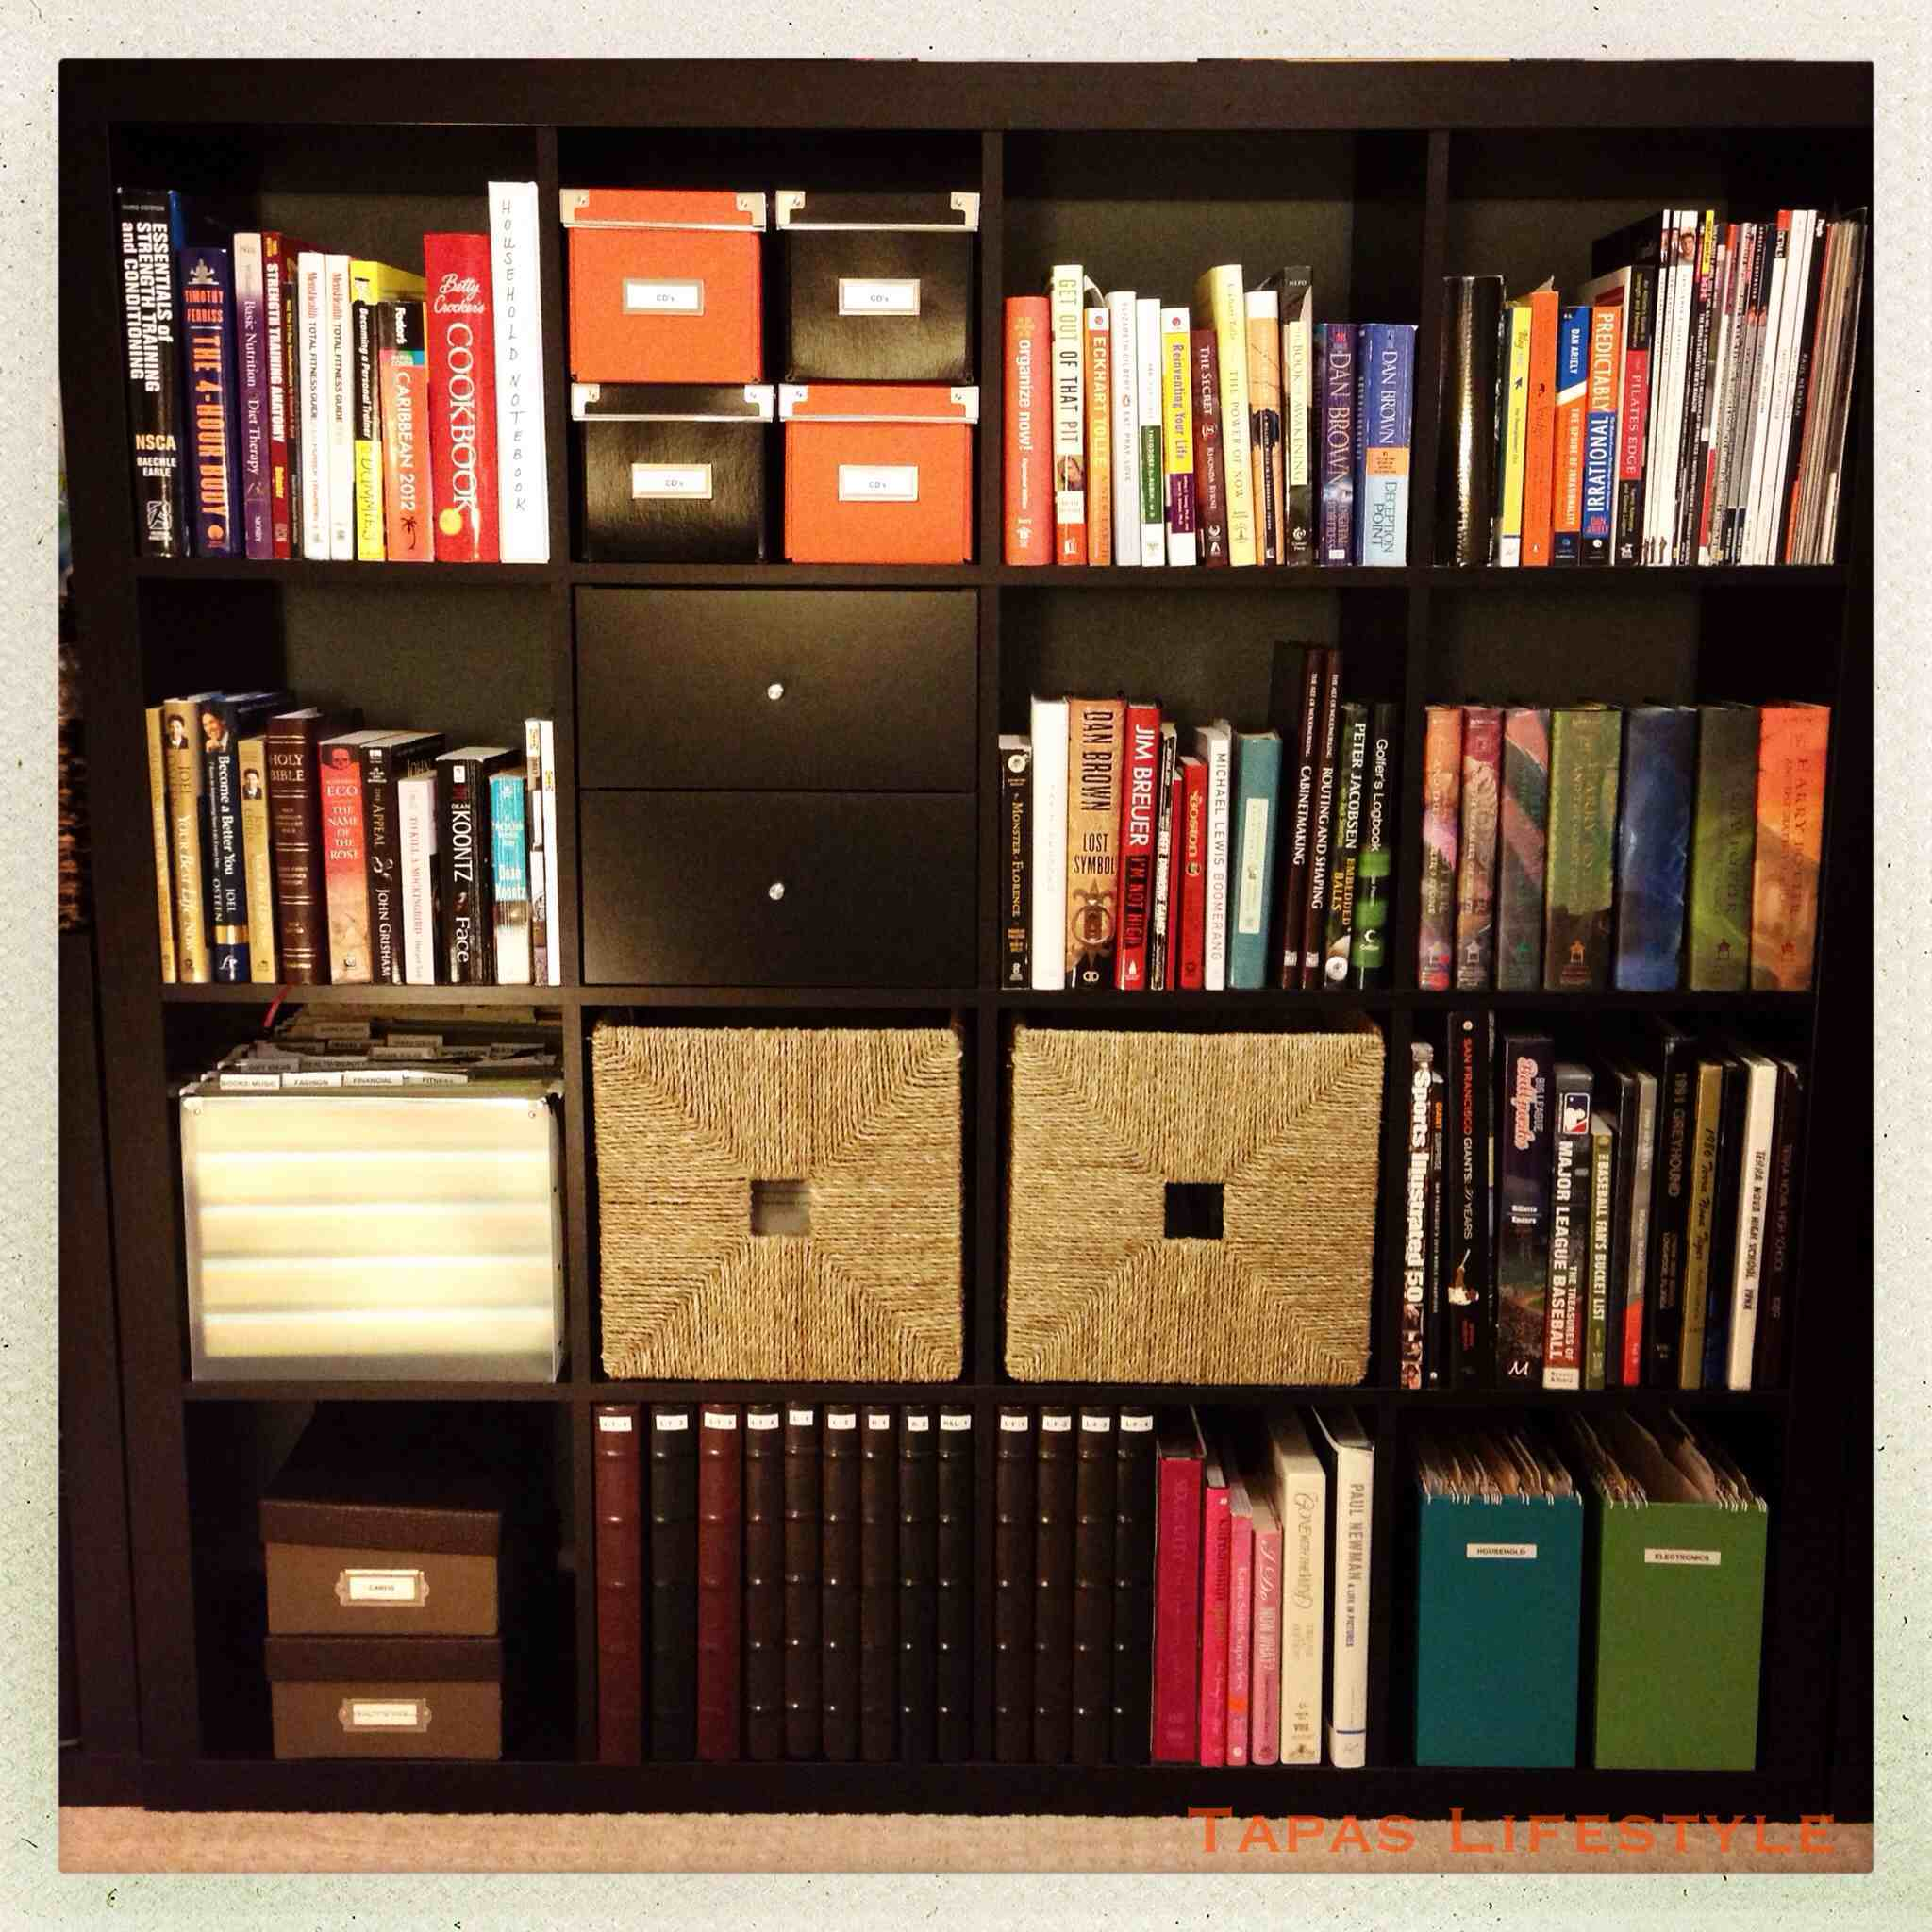 black ikea expedit bookcase filled with many books plus drawers